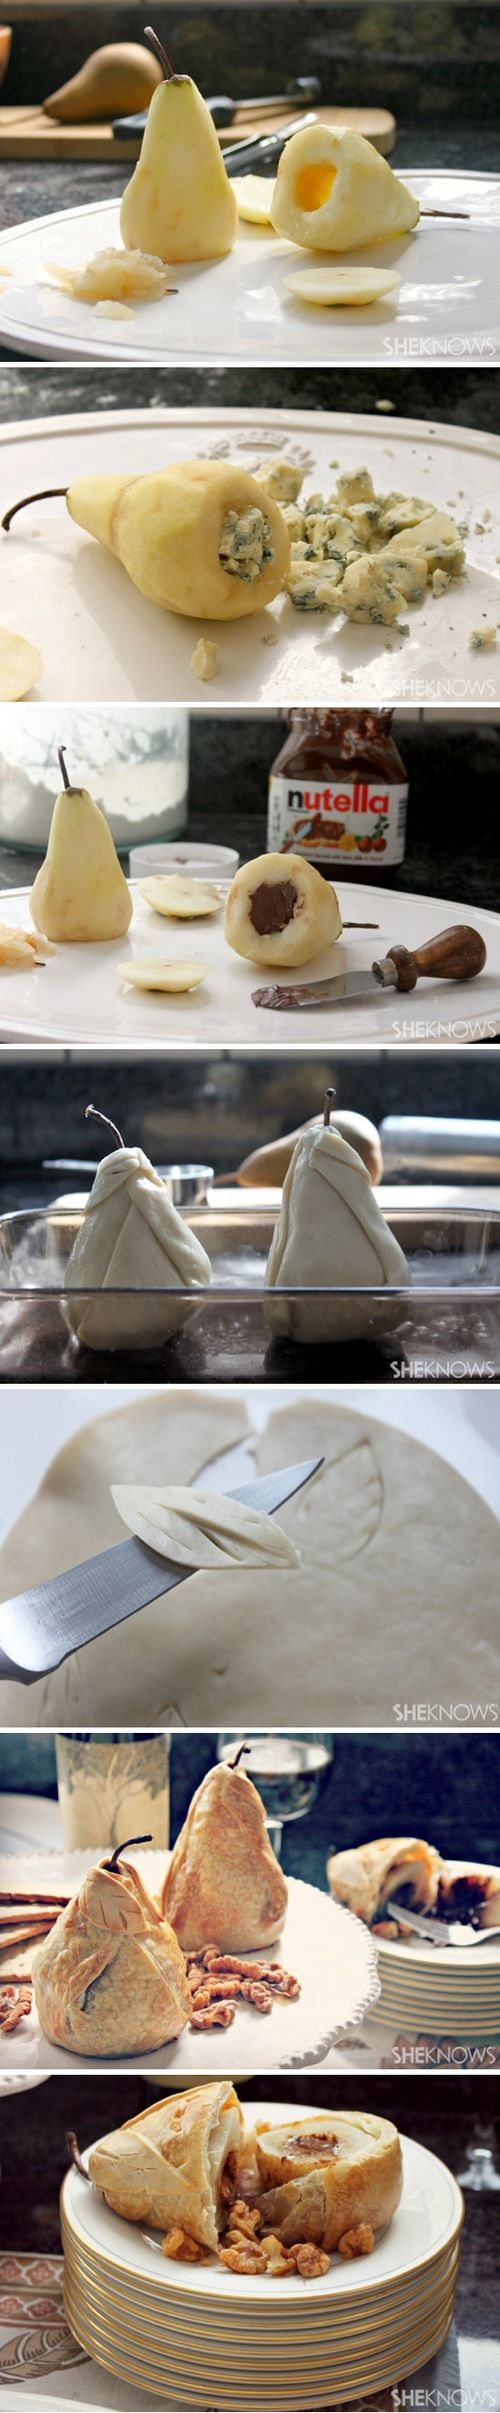 Stuffed and Baked Pear Pies Food Pix | Recipe by Picture